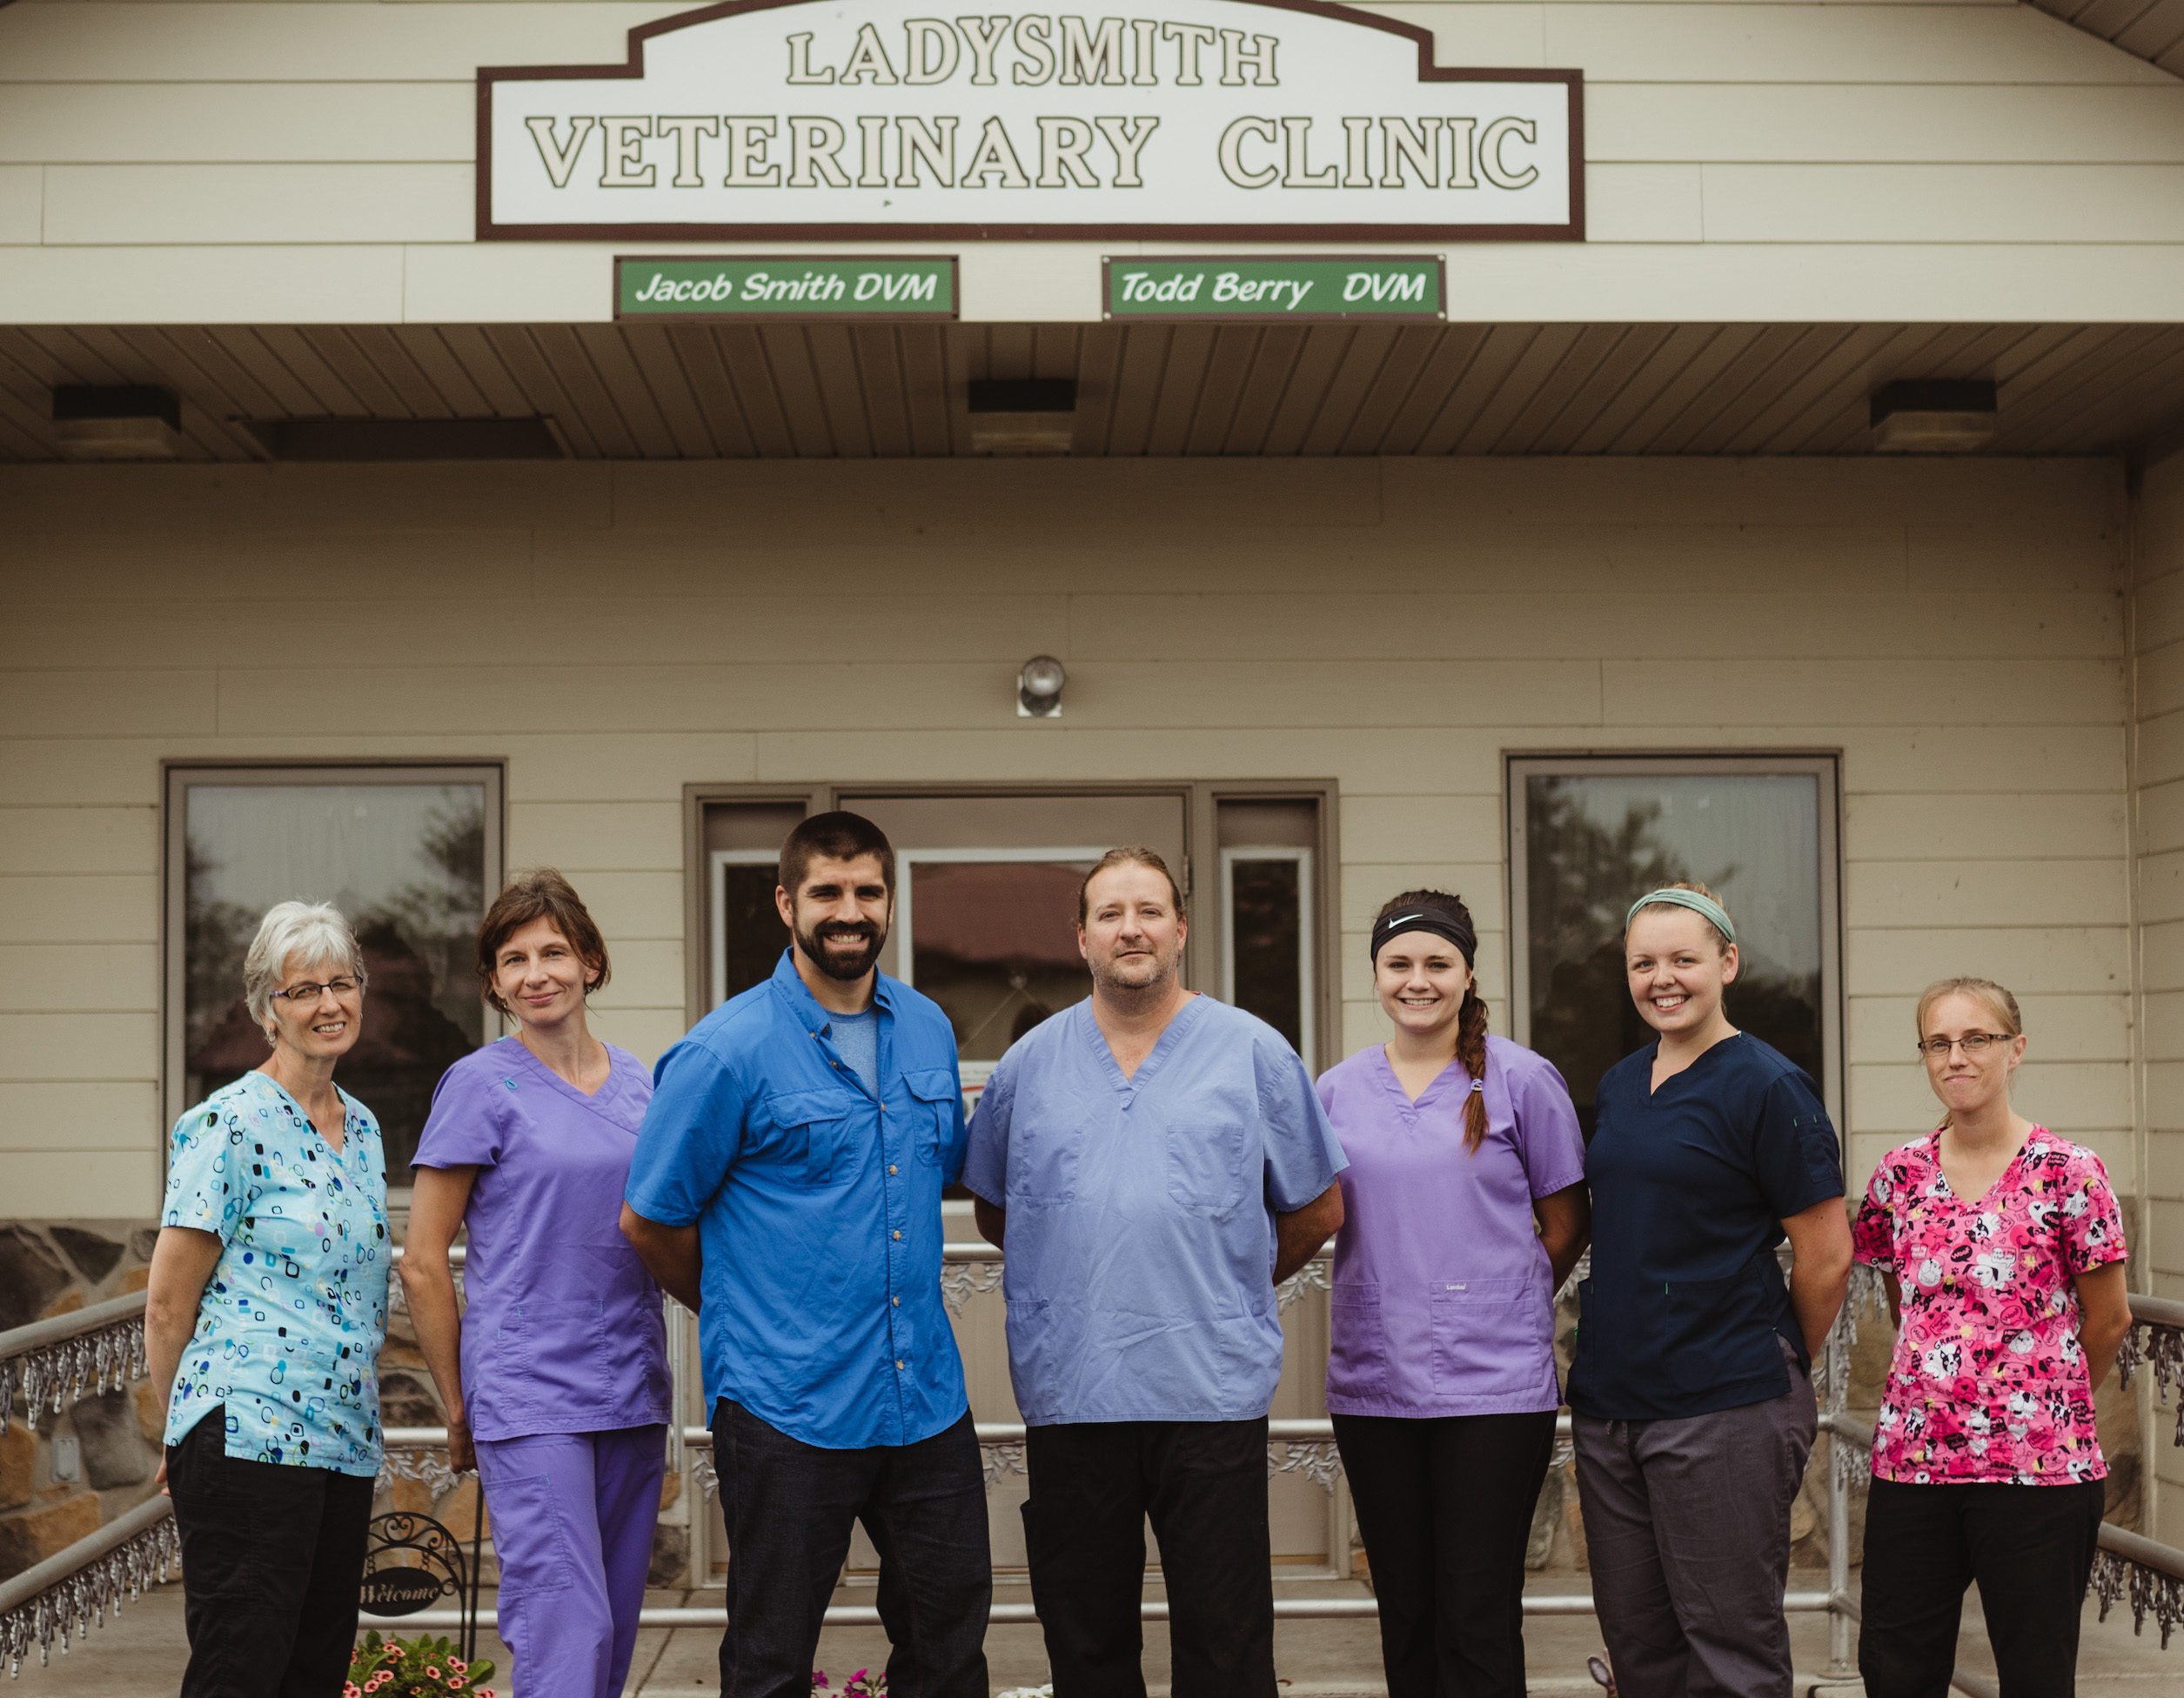 Customer Spotlight: Ladysmith Veterinary Clinic